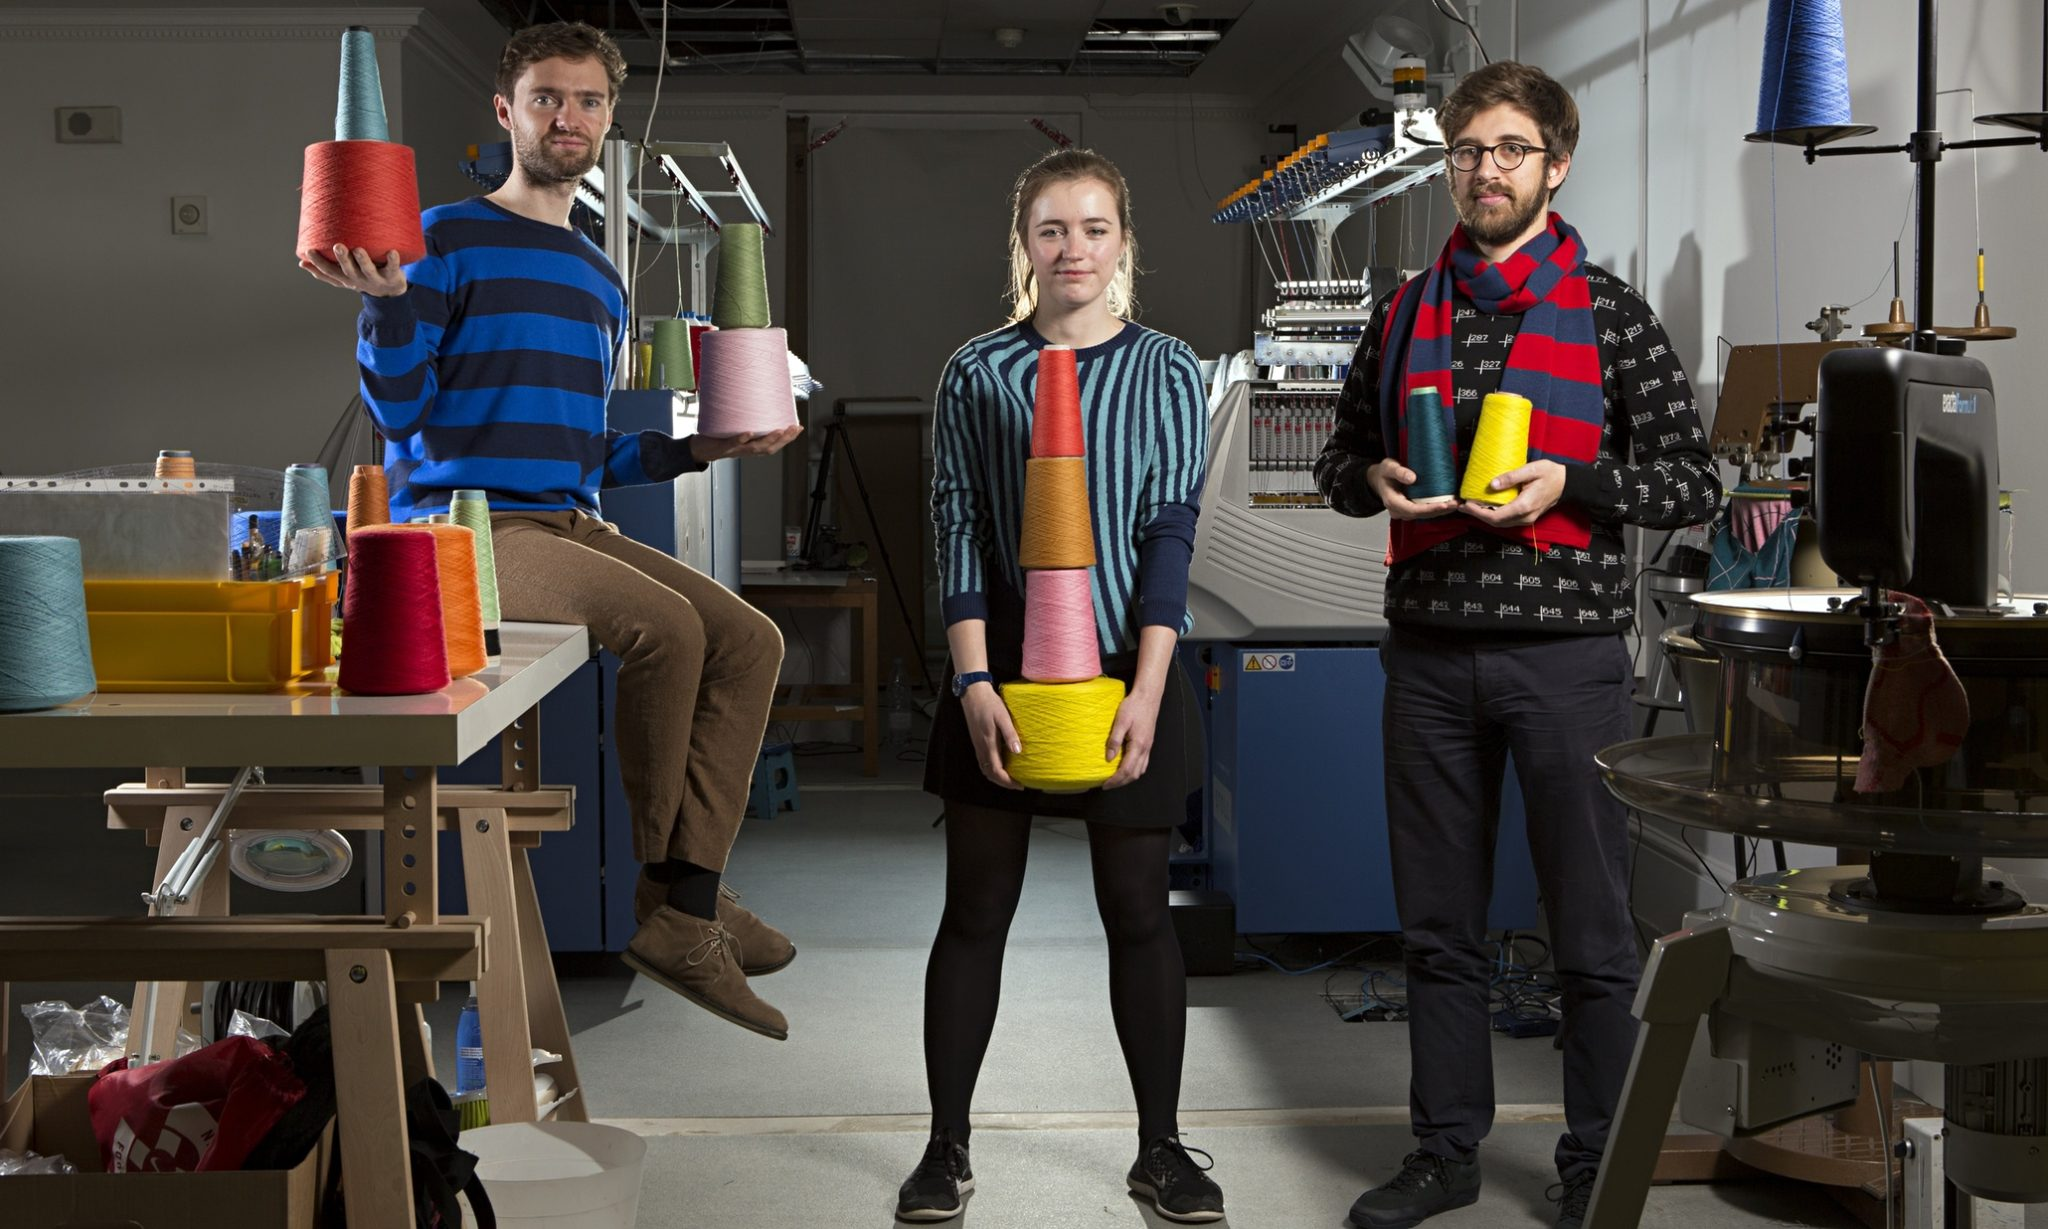 Founded by Royal College of Art trio, Ben Alun-Jones, Hal Watts and Kirsty Emery